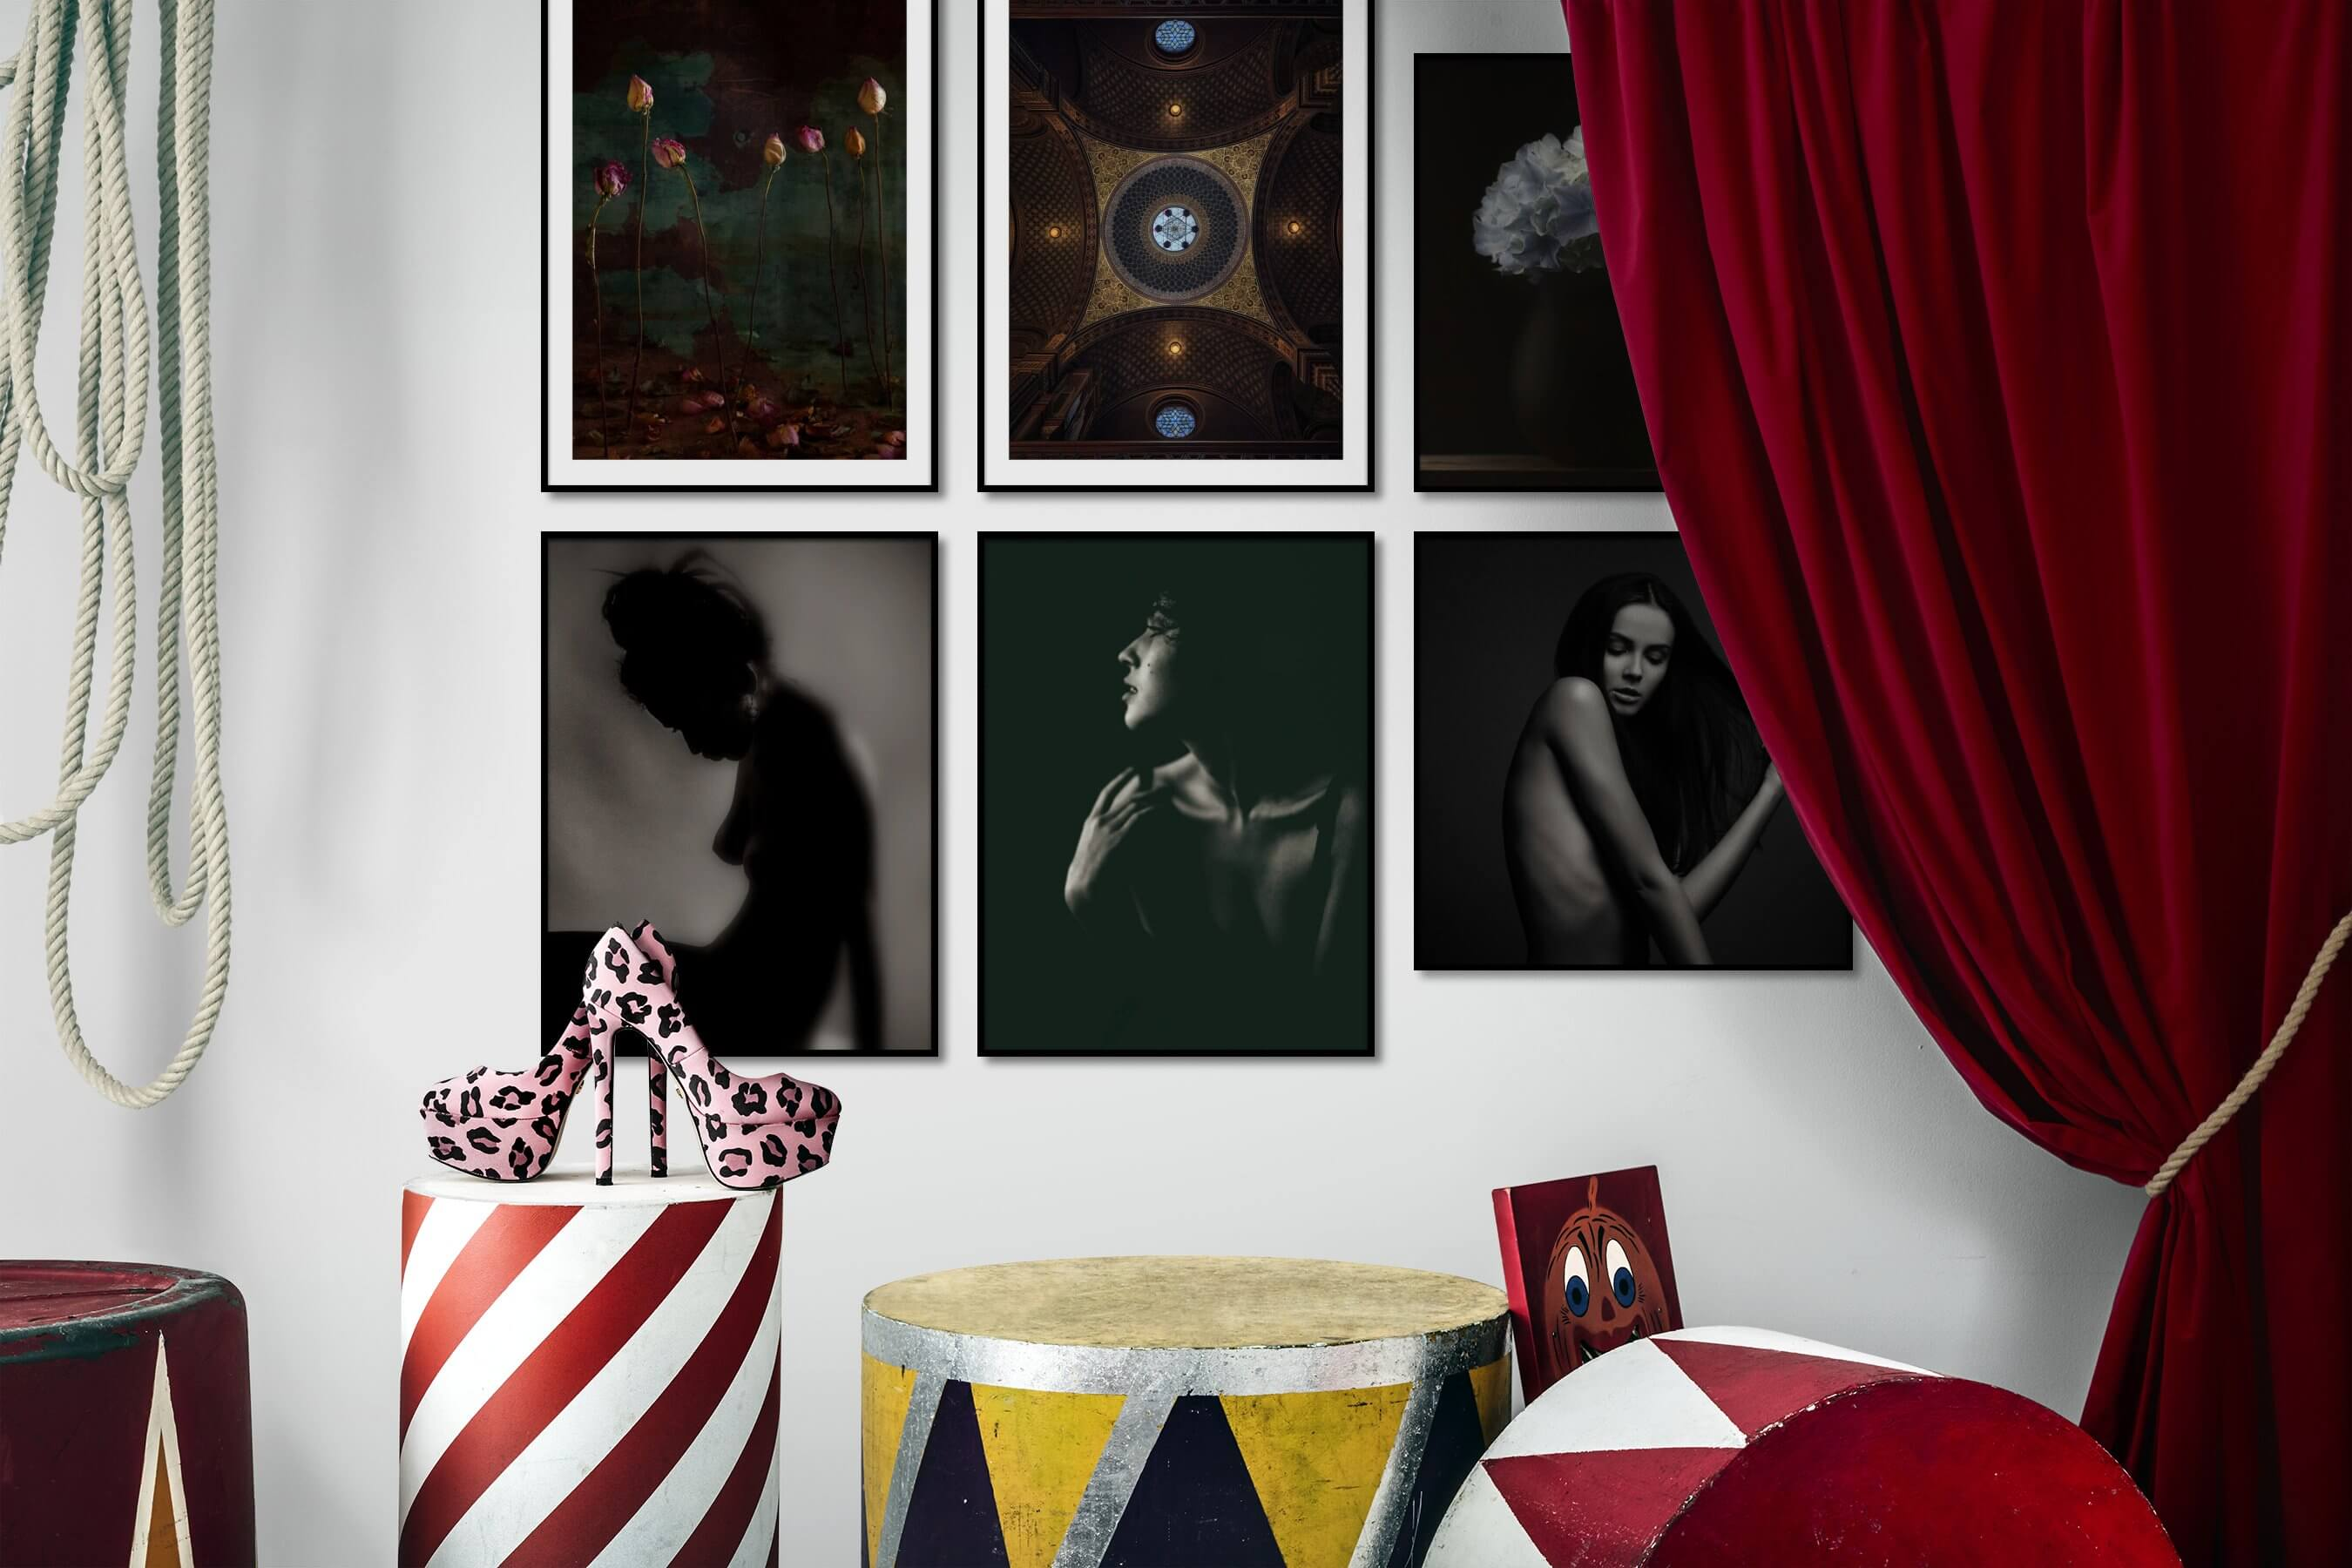 Gallery wall idea with six framed pictures arranged on a wall depicting Flowers & Plants, Vintage, For the Maximalist, Fashion & Beauty, Black & White, Bold, Dark Tones, and For the Minimalist